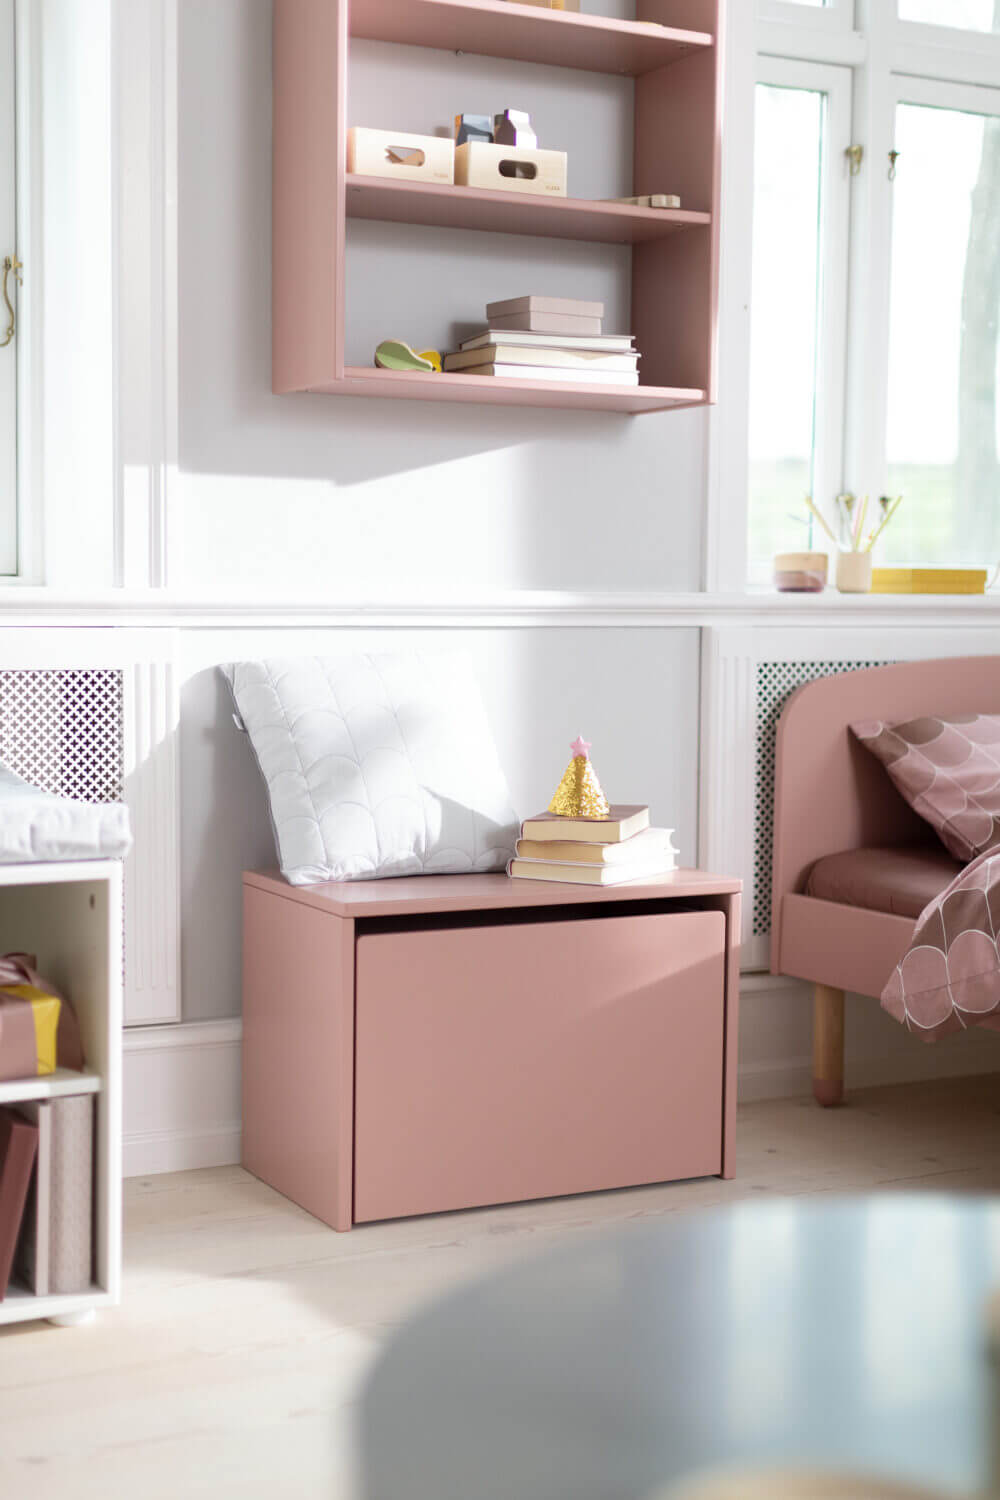 3-in-1 Bank Play Rosa